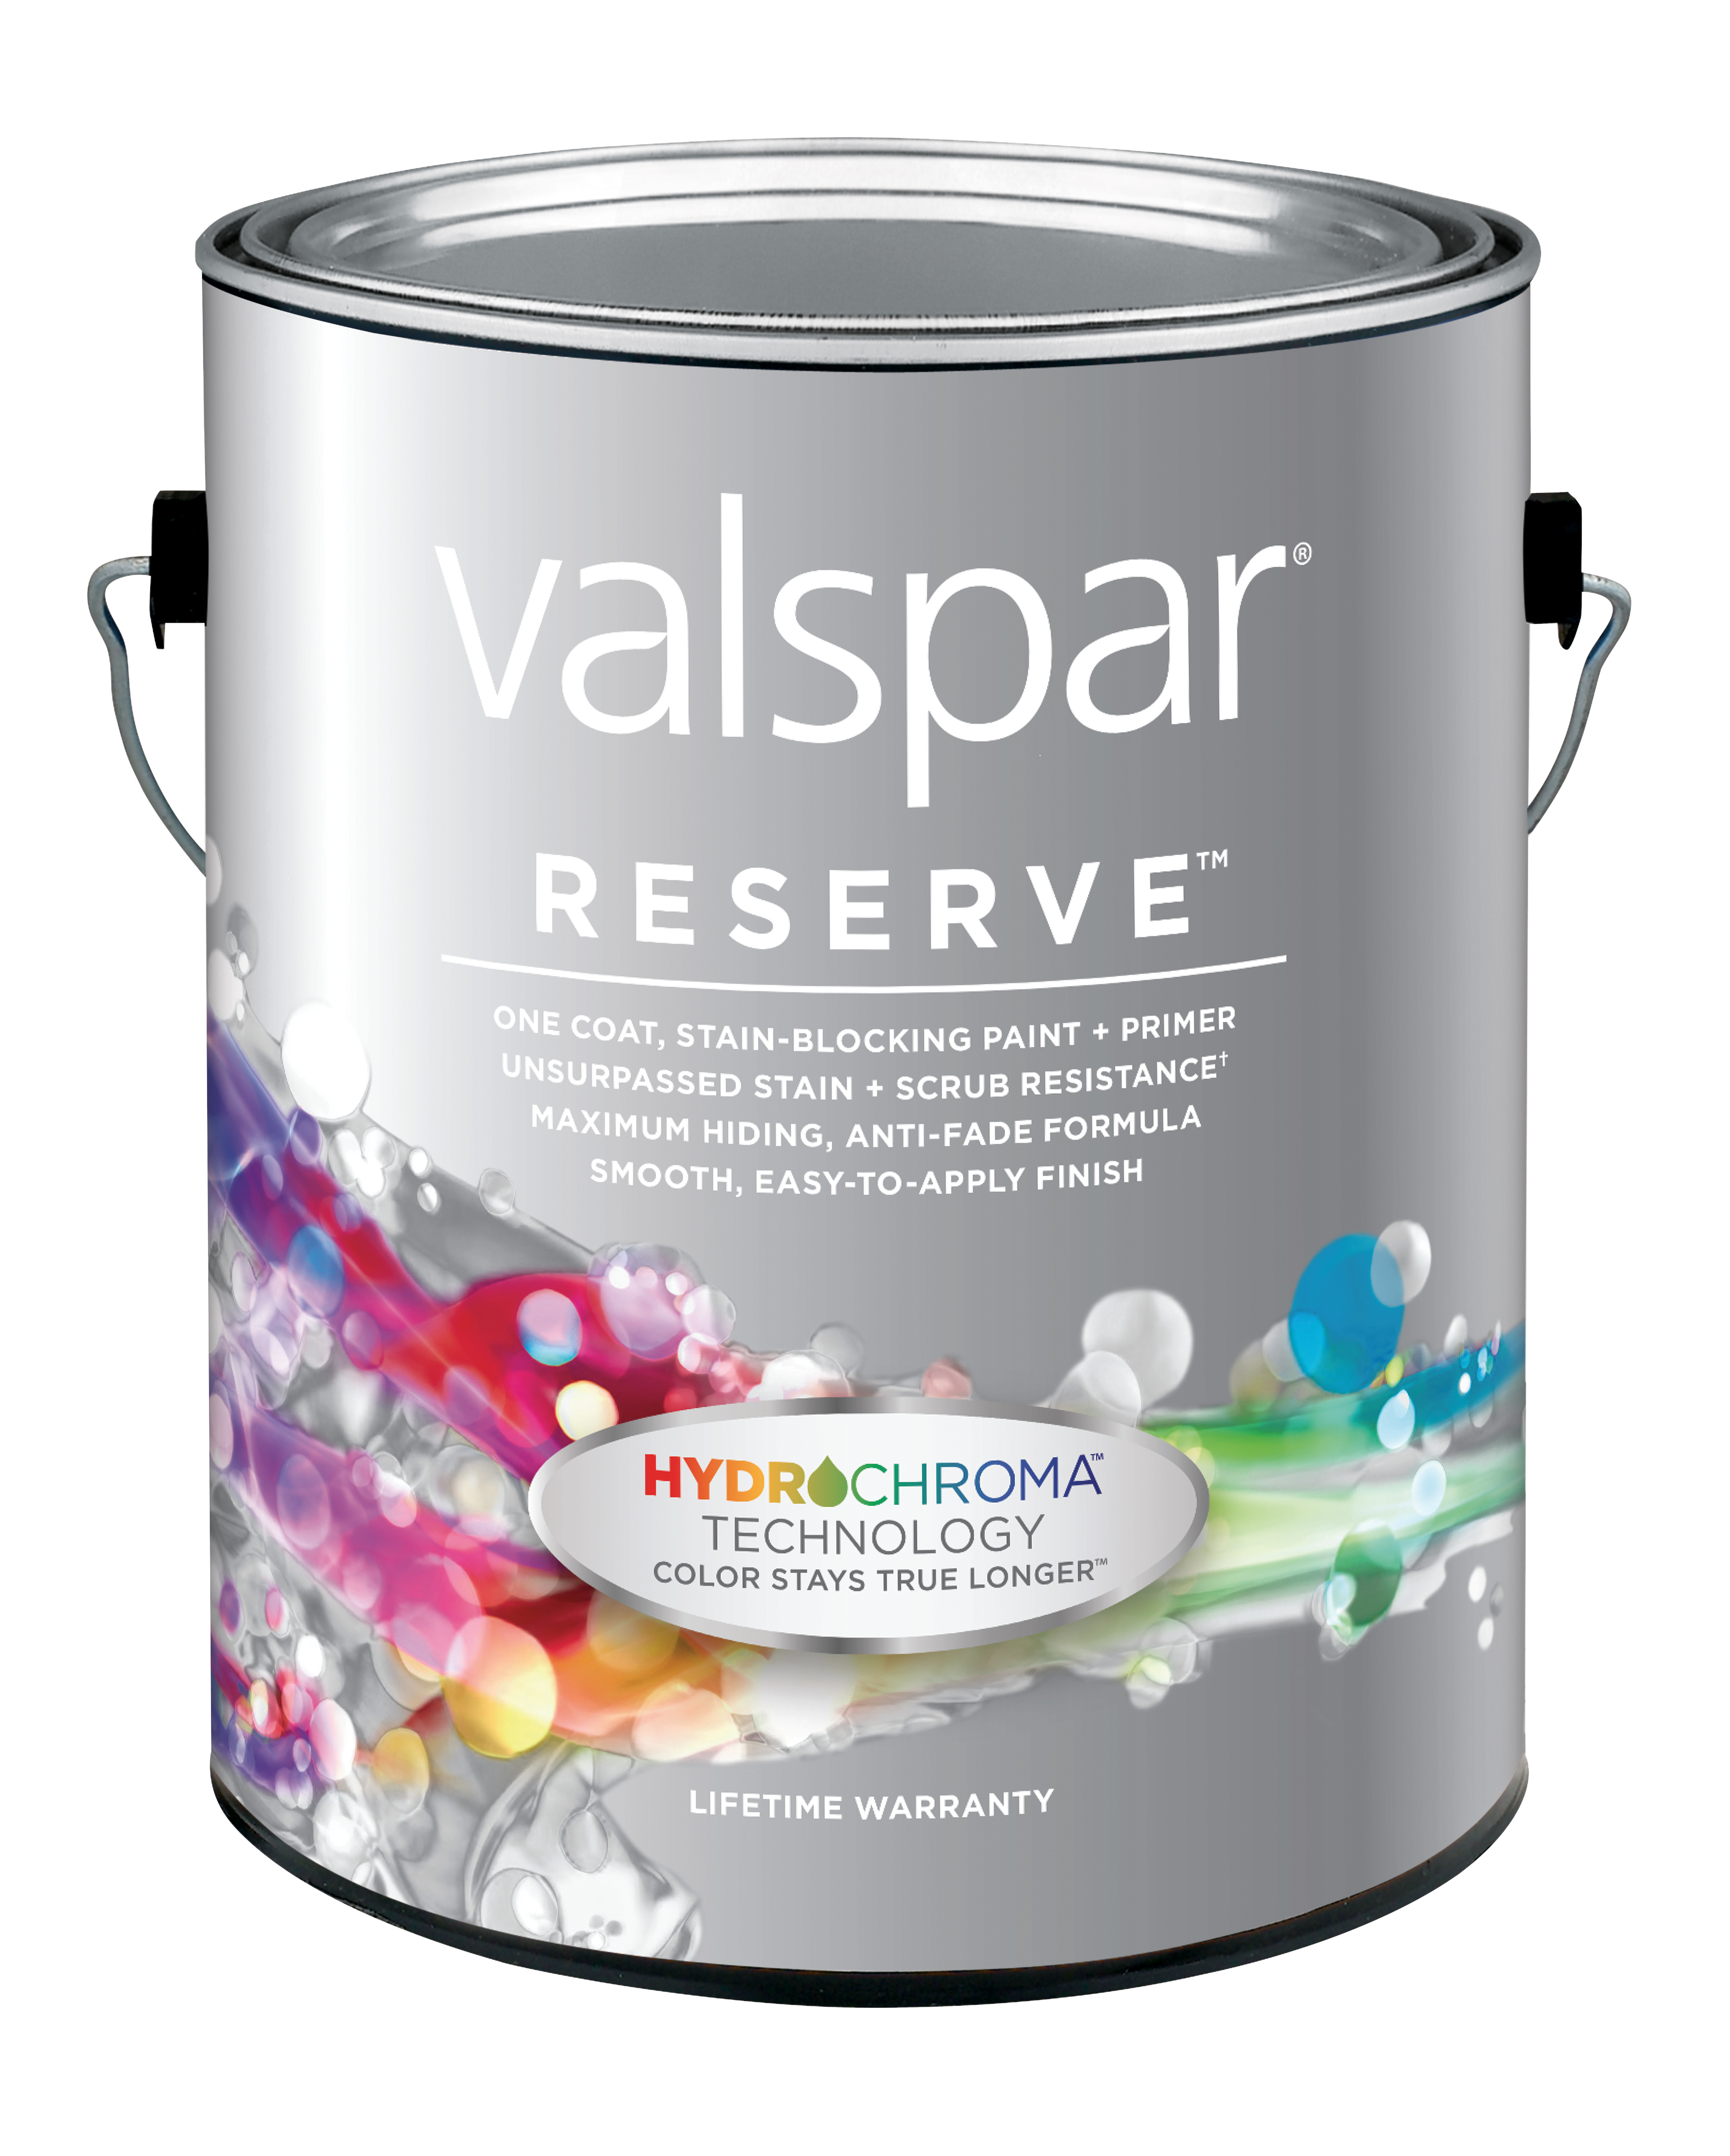 Nice Valspar Paint to Make Your Home Look Beautiful: Valspar Bathroom Paint | Valspar Paint | Valspar Paint Home Depot